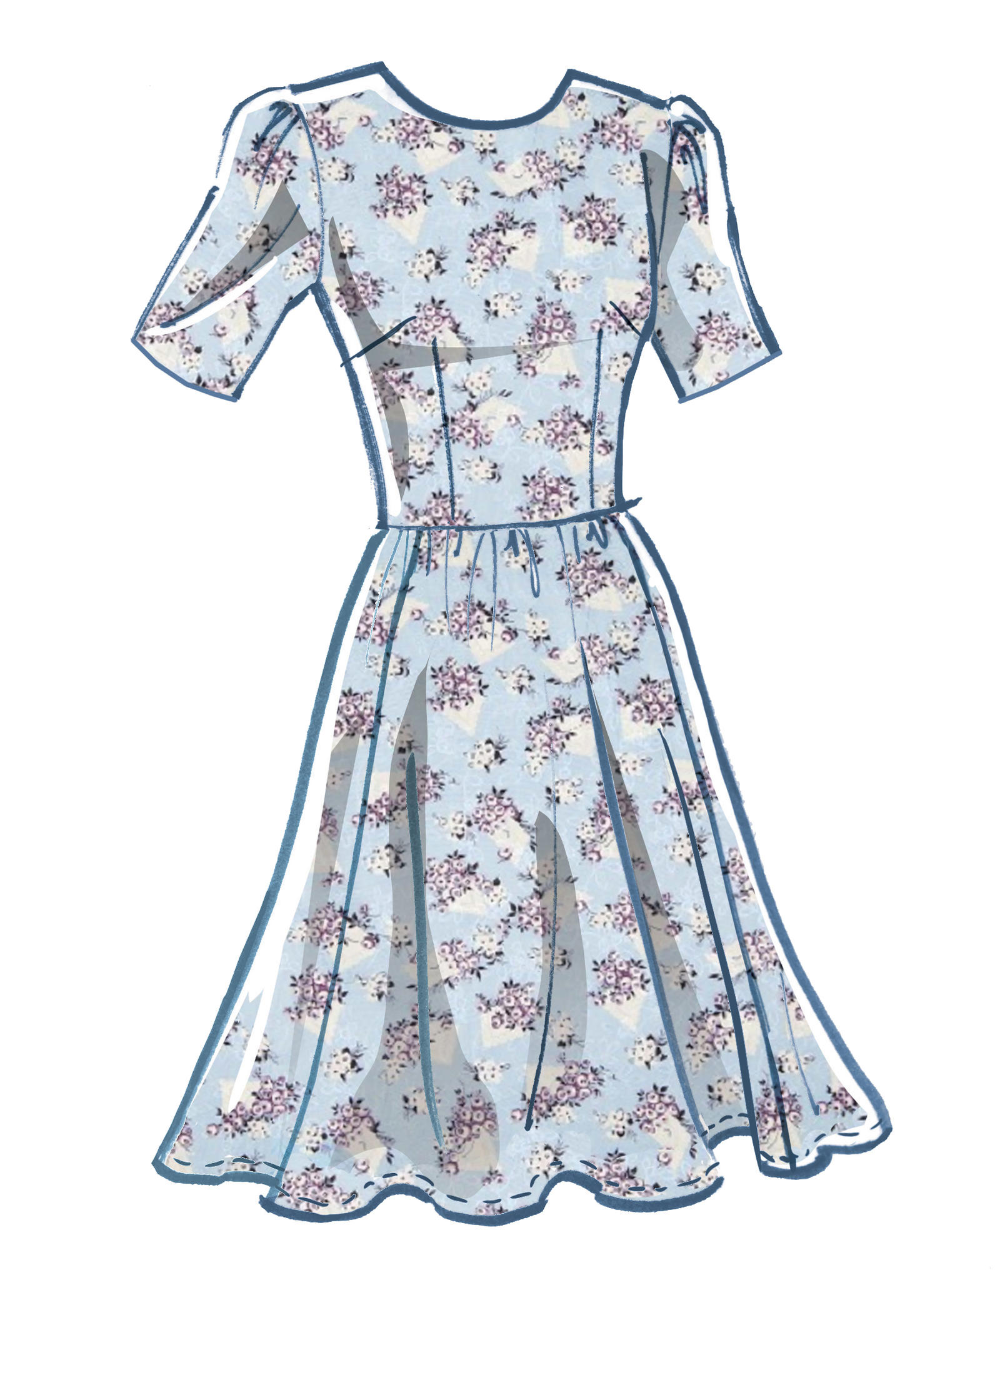 Misses Dresses Sewing Pattern Mccall S Patterns In 2020